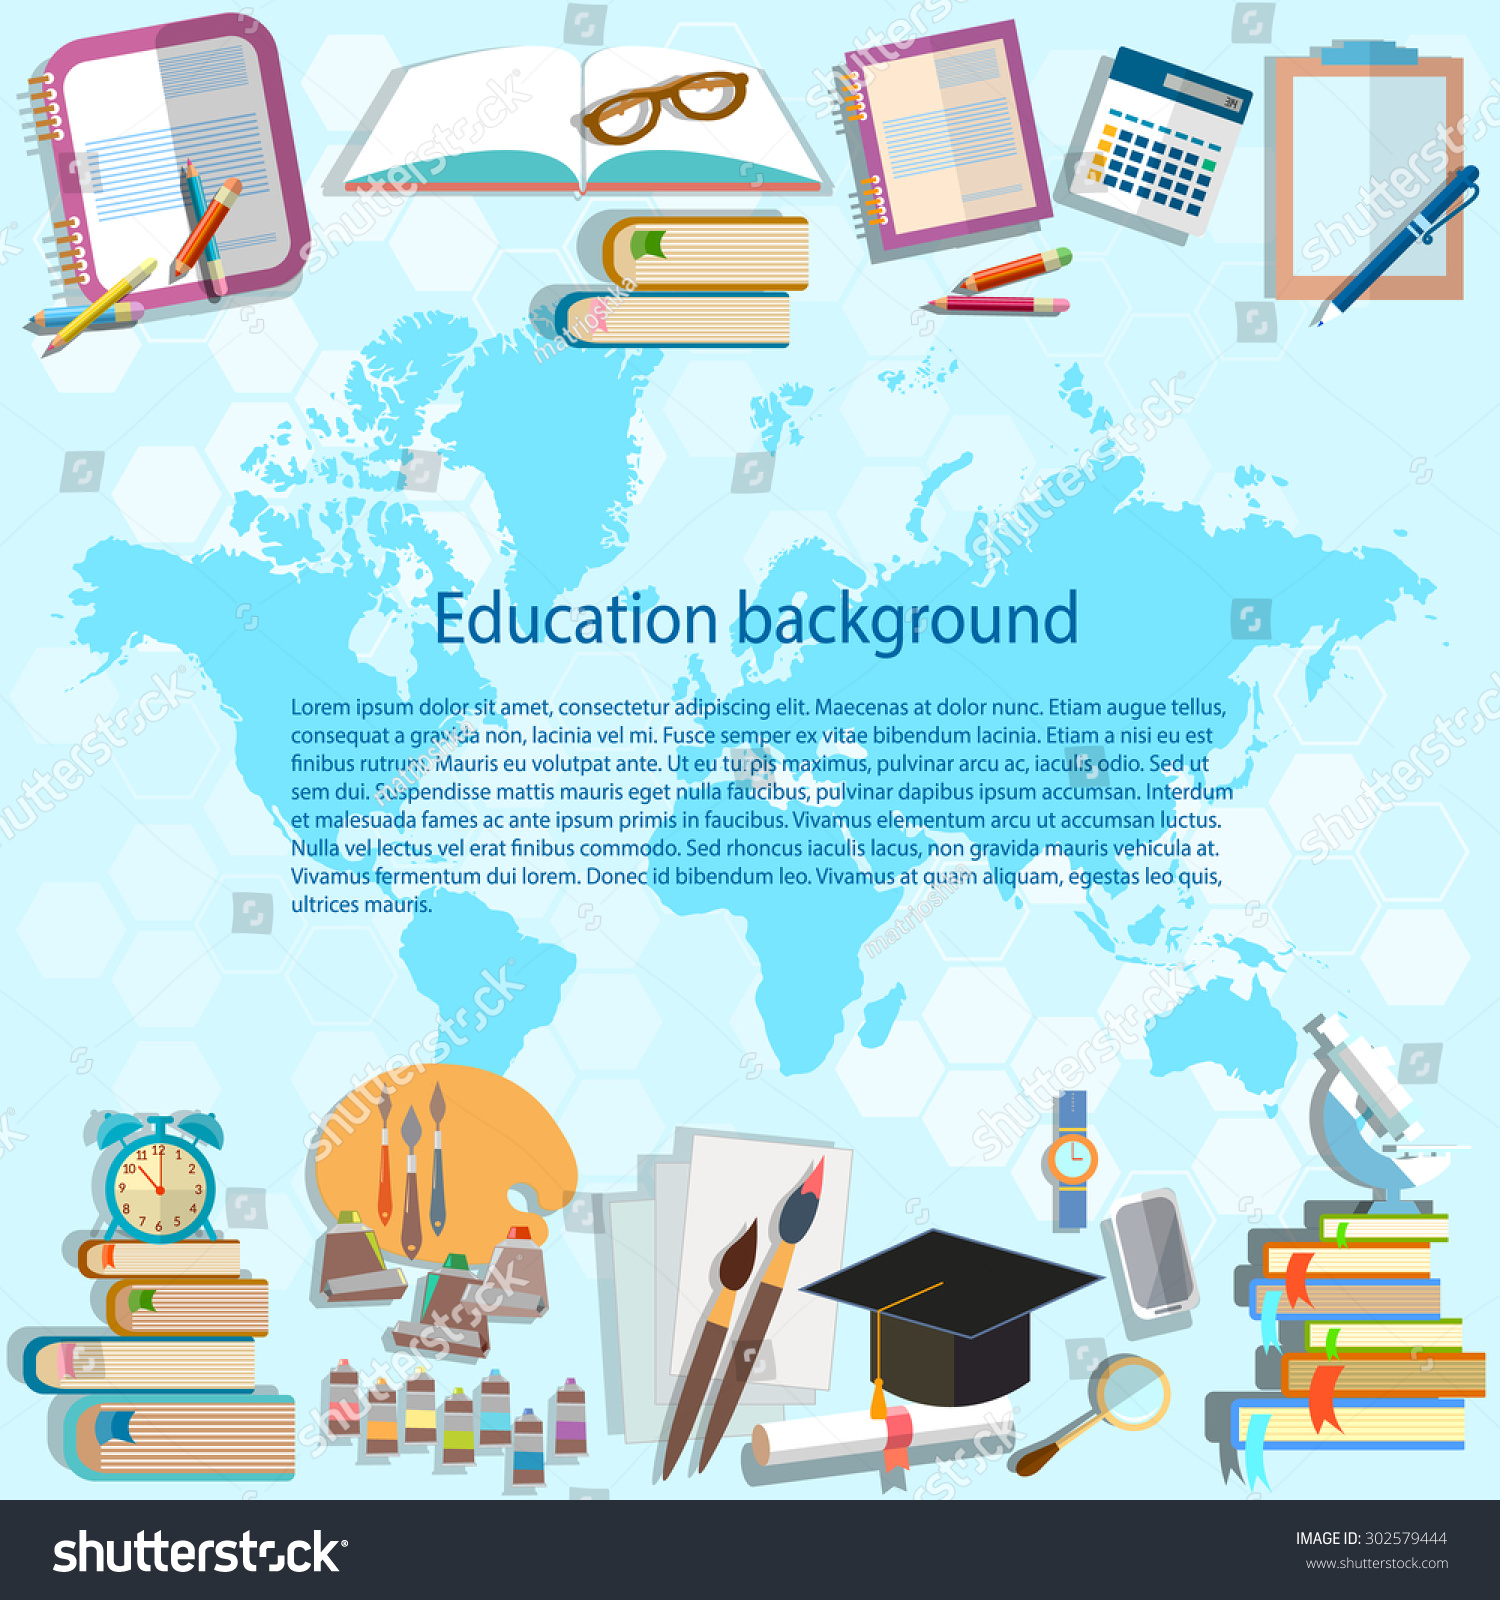 Science education back school world map stock vector 2018 science and education back to school world map online examinations student subjects university college math physics gumiabroncs Images